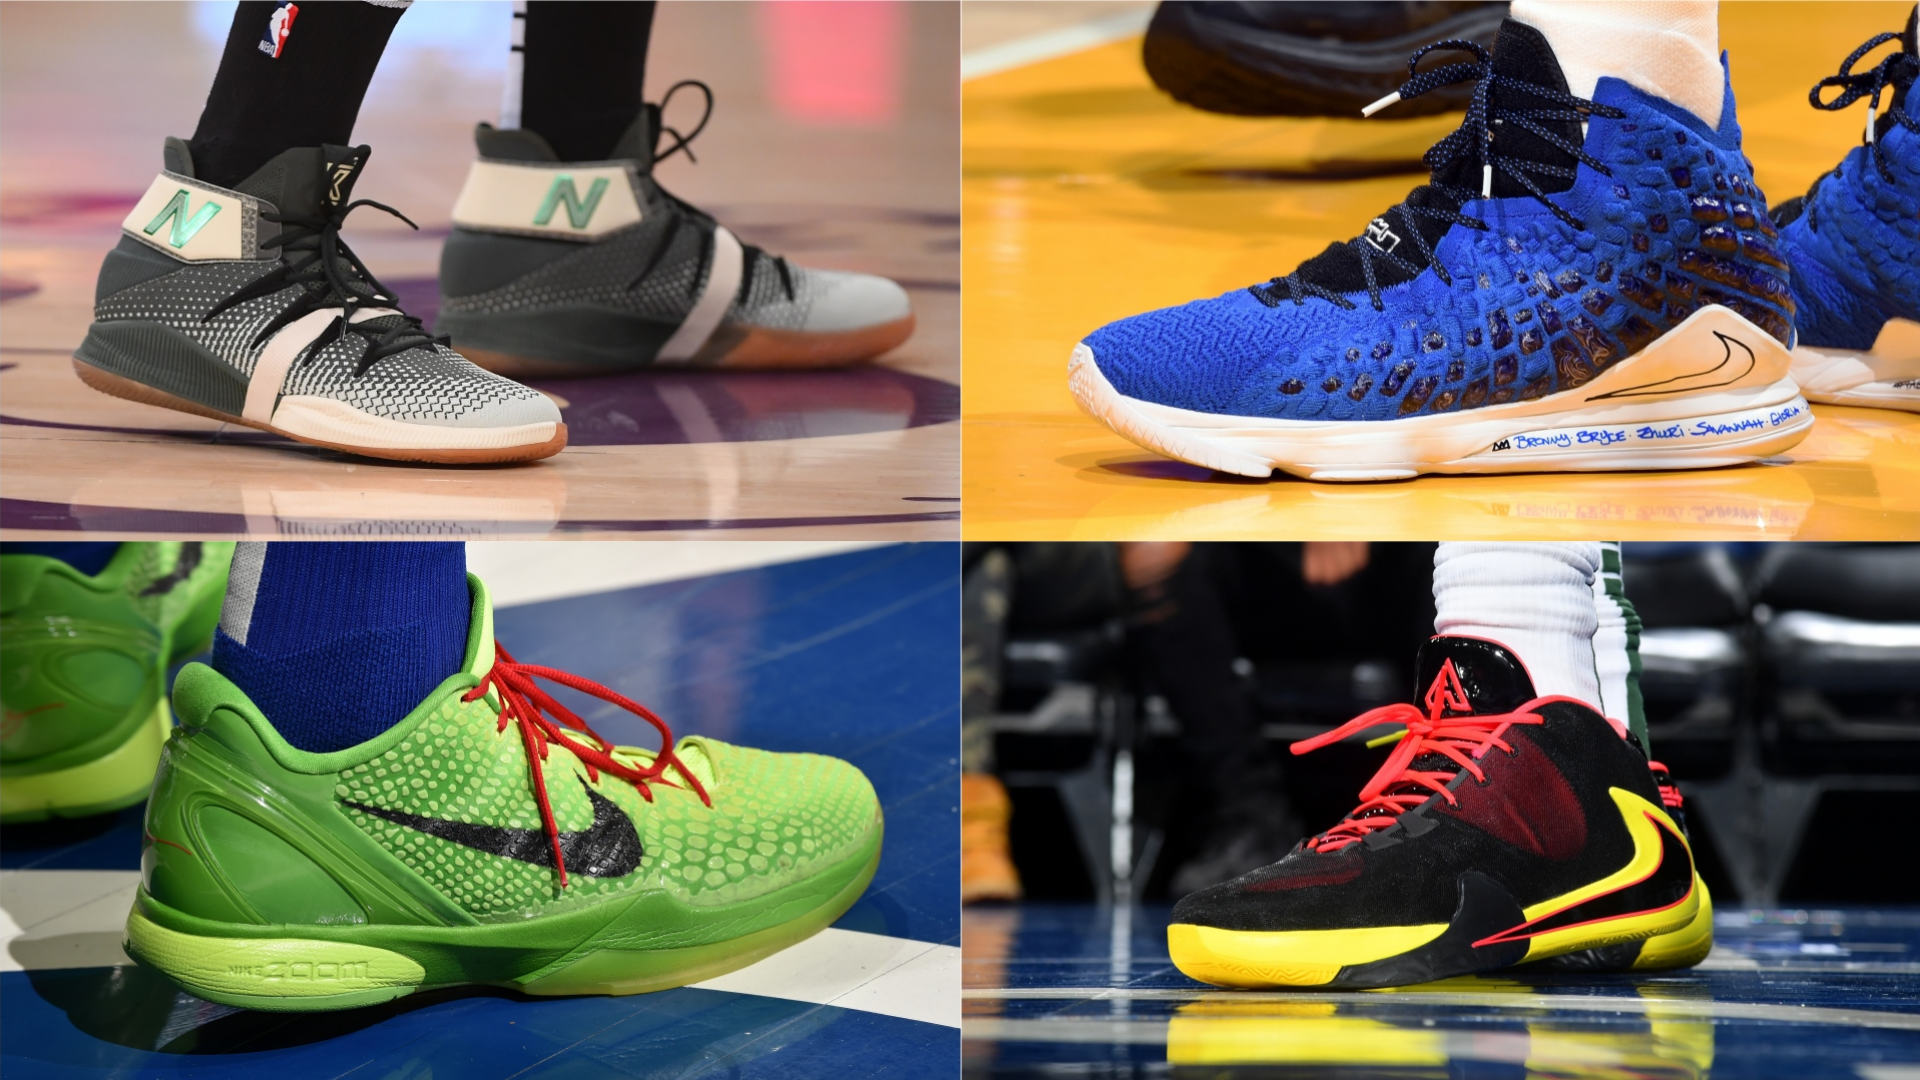 Lebron Christmas Shoes 2020 NBA Christmas Day 2019: Best sneakers from the five holiday